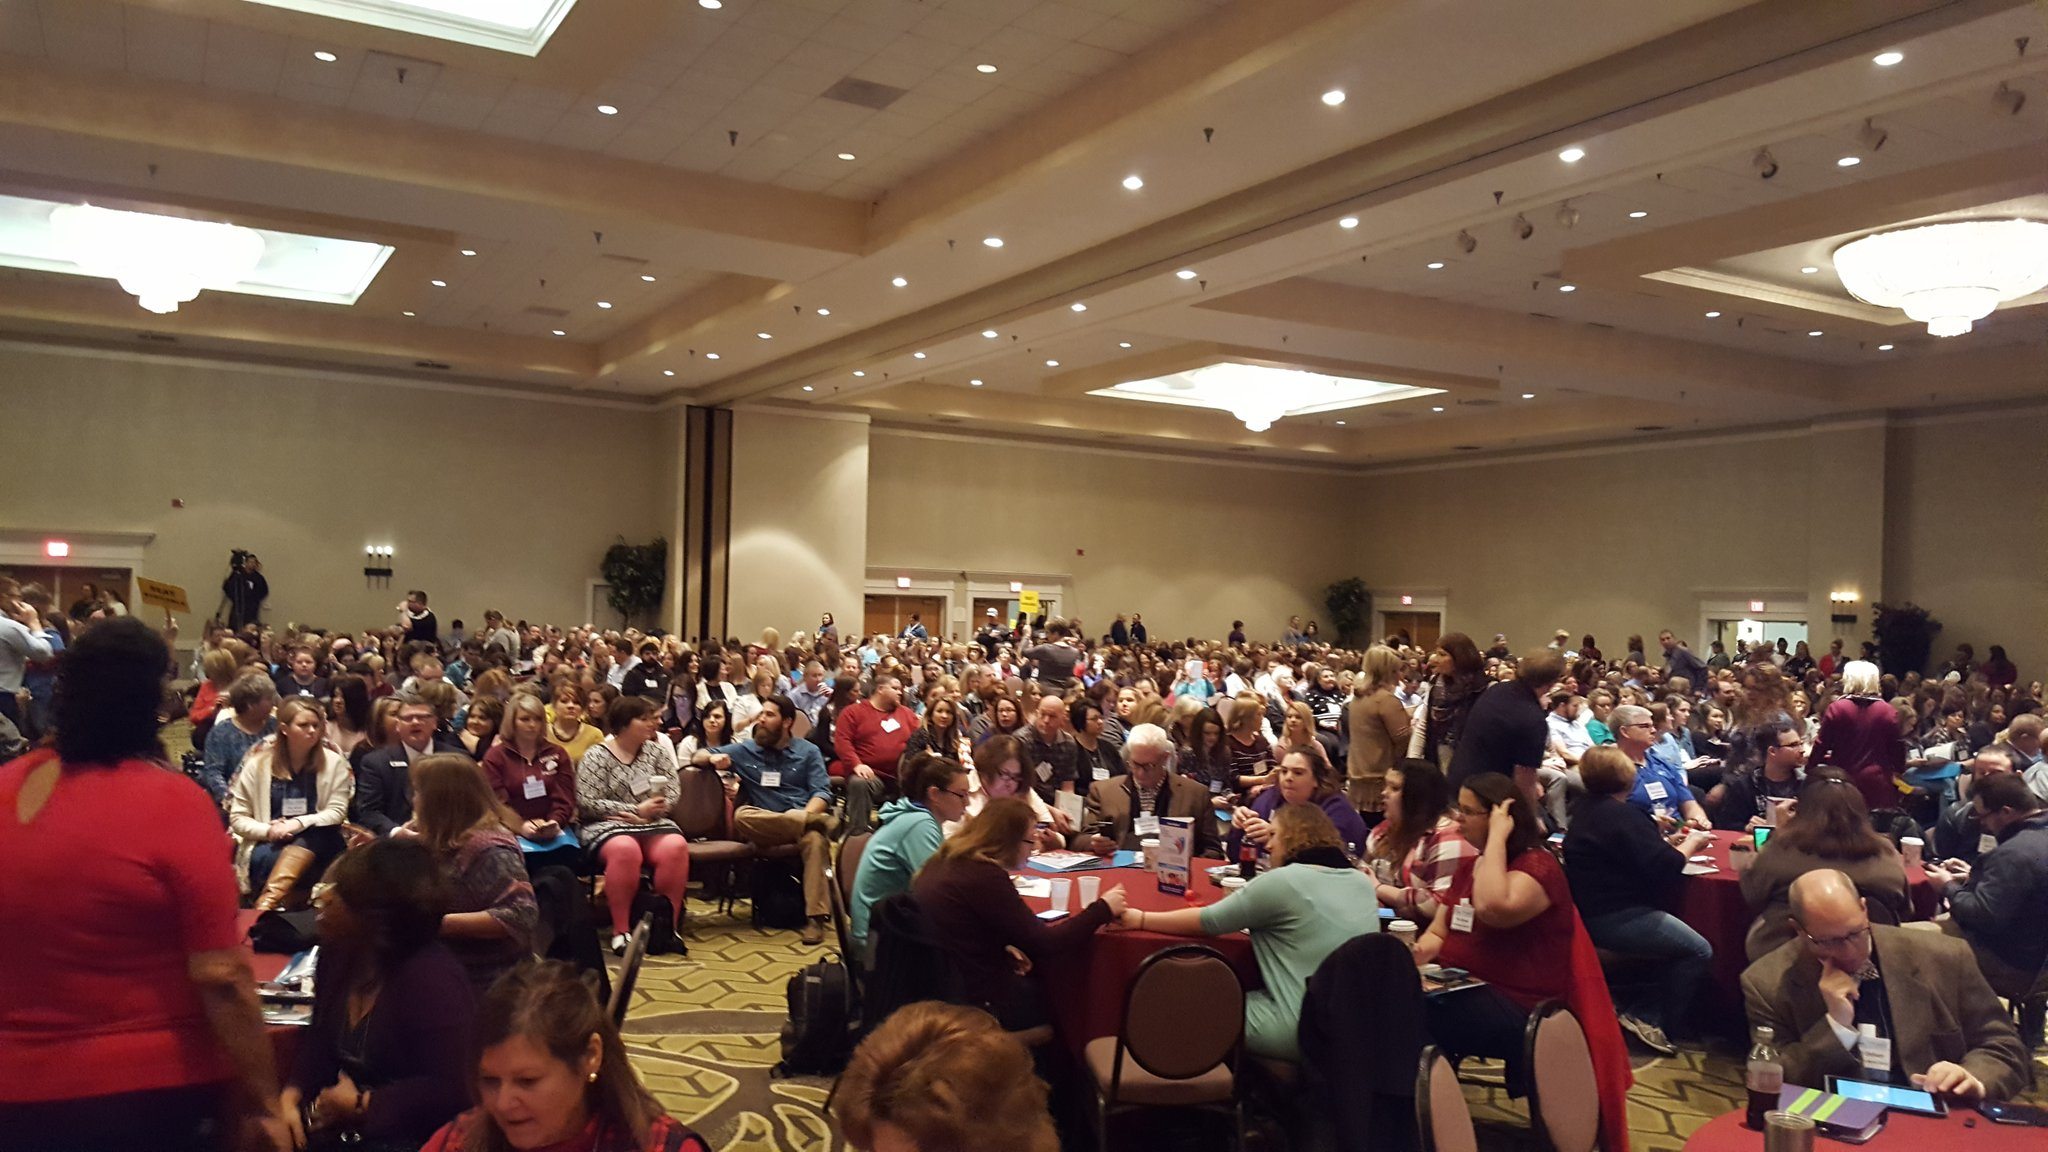 Full house at #moplc17! Can't wait to learn from some of the best to improve Student achievement! @moplc @StLouisRPDC @EducPlus https://t.co/xFdwc8mavF